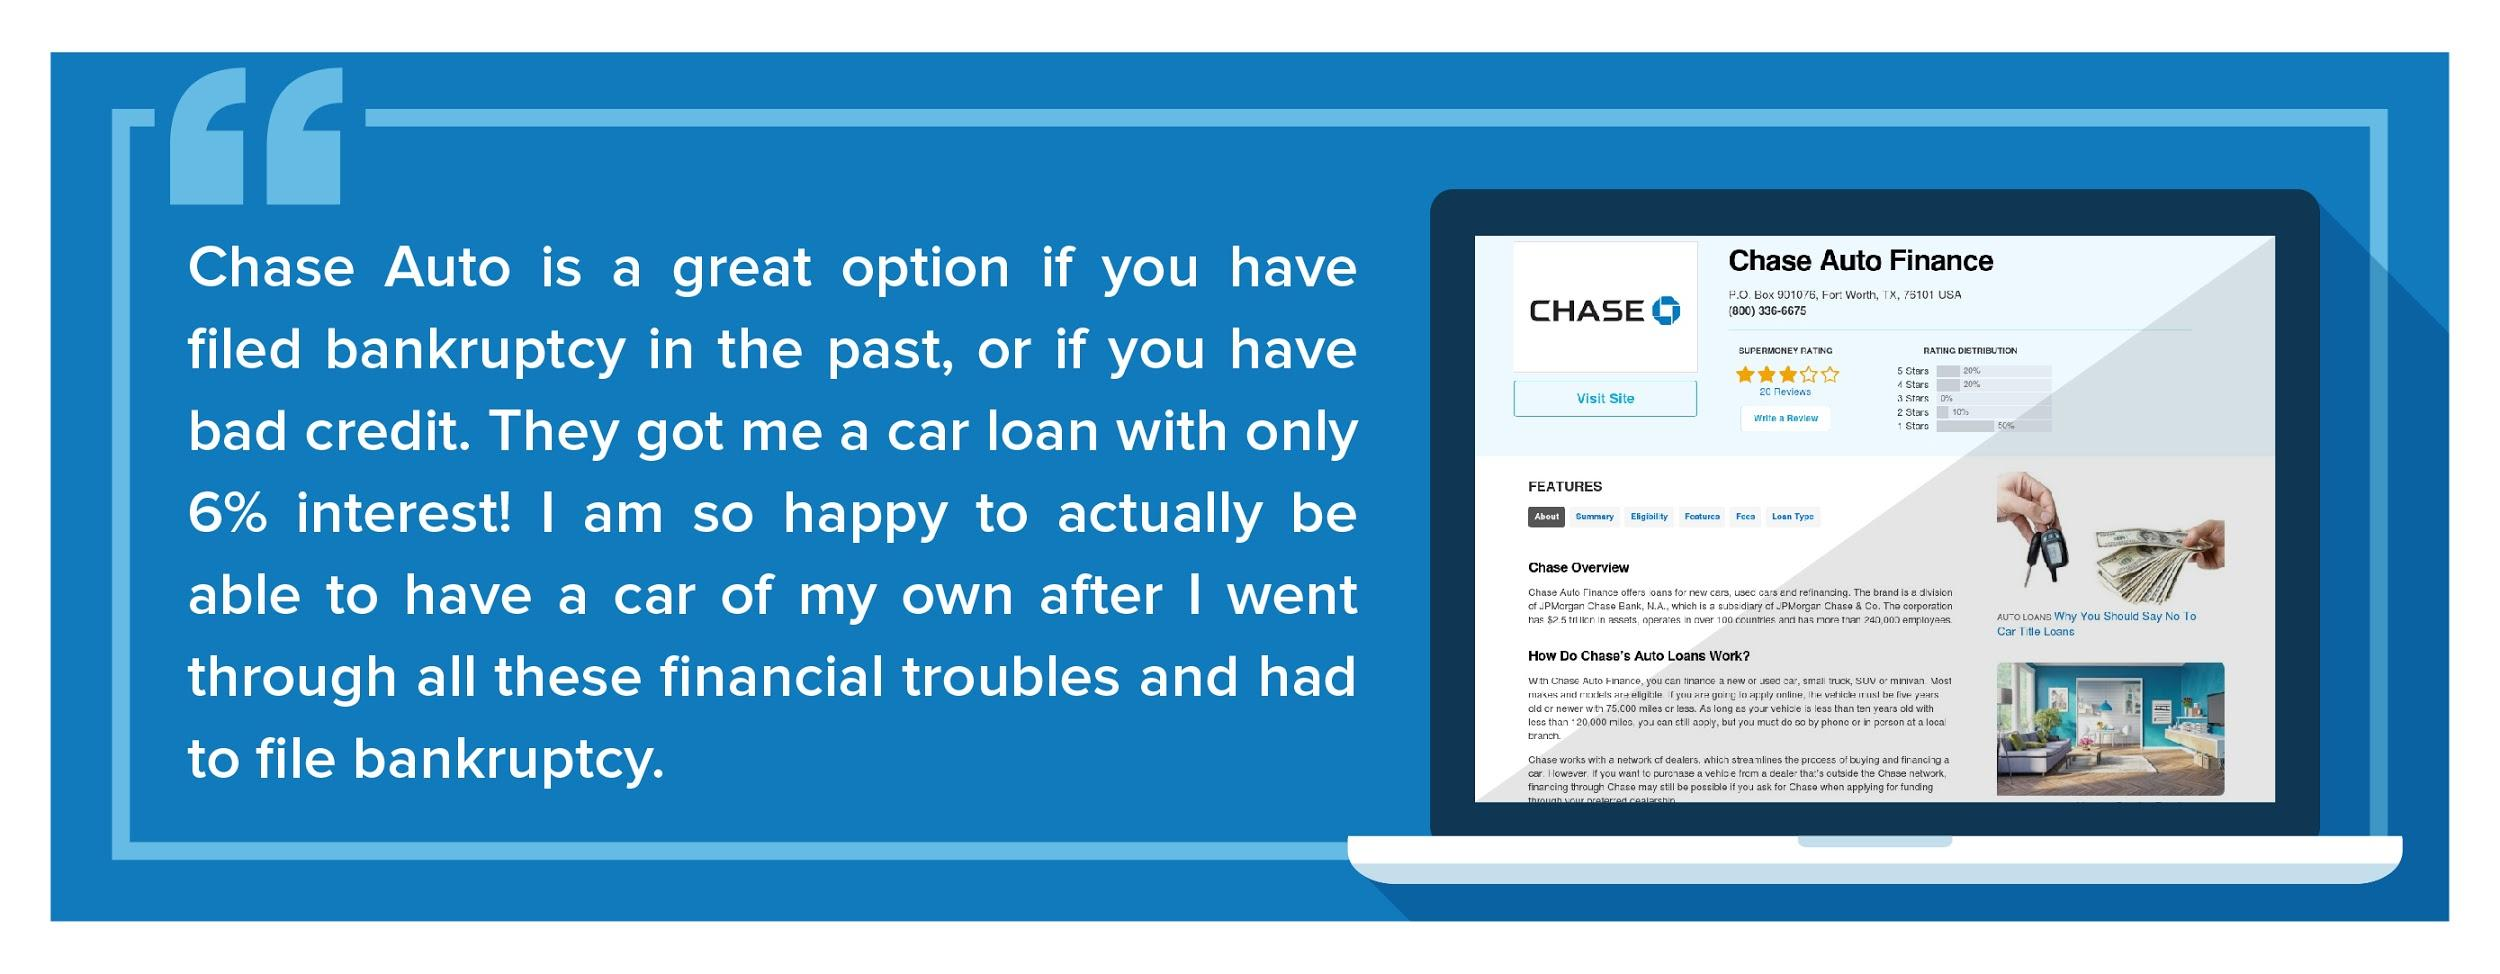 Chase Auto Loans Review 2